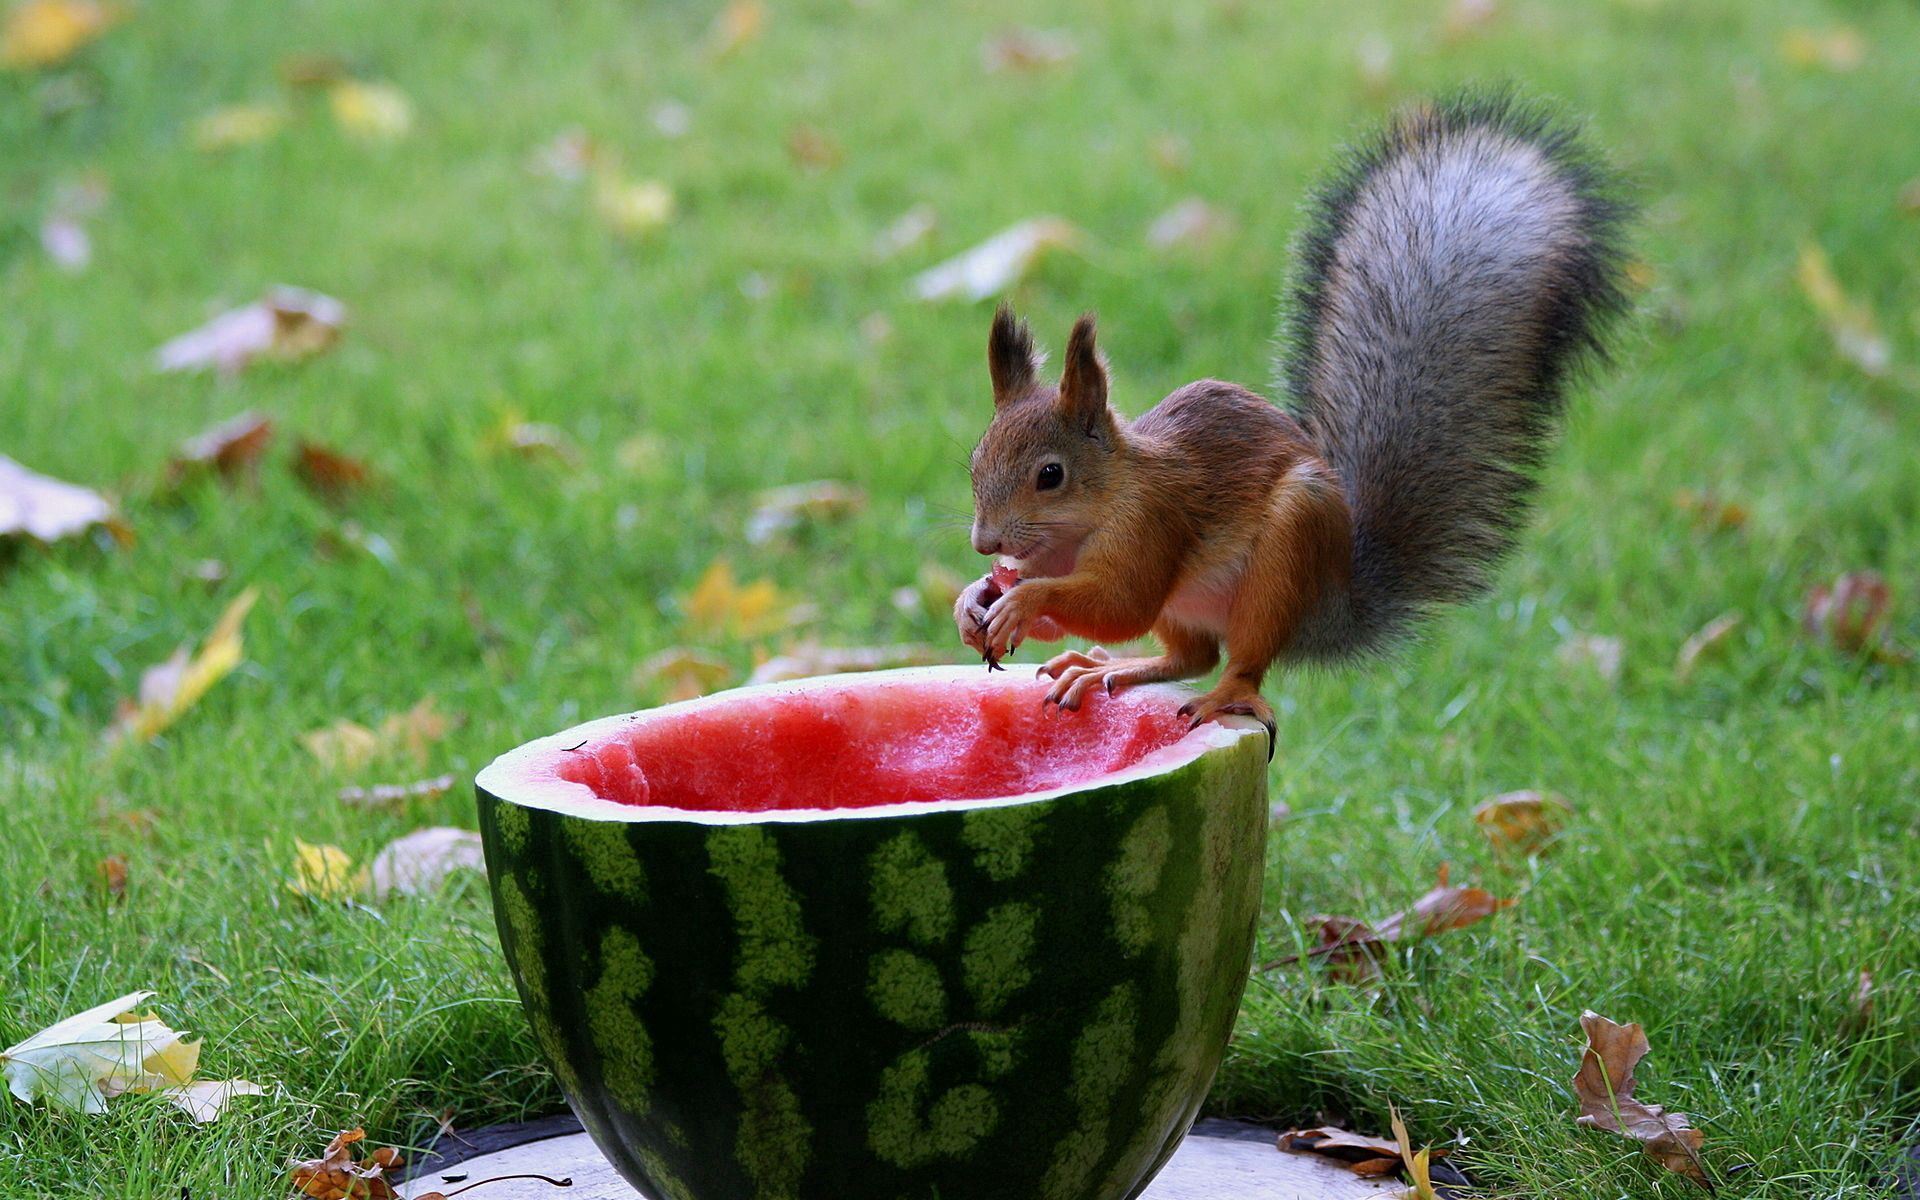 149538 download wallpaper Animals, Squirrel, Watermelon, Grass, Leaves, Autumn, Food screensavers and pictures for free